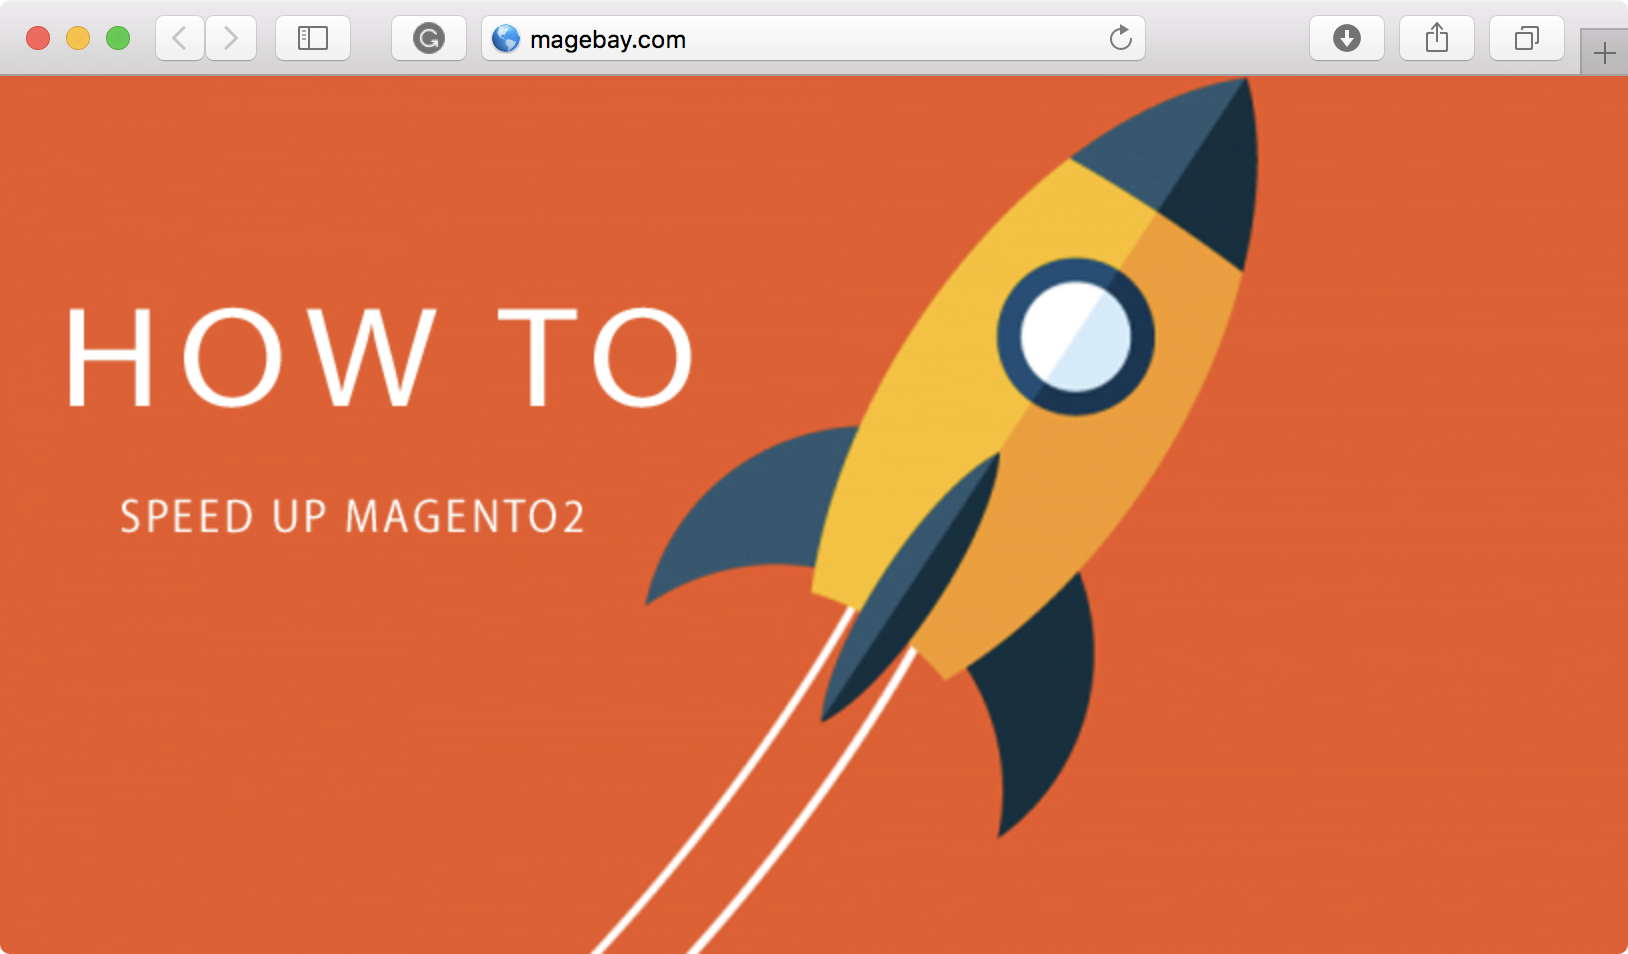 Magento Speed Up: First time page load is taking 1.7 seconds. How?